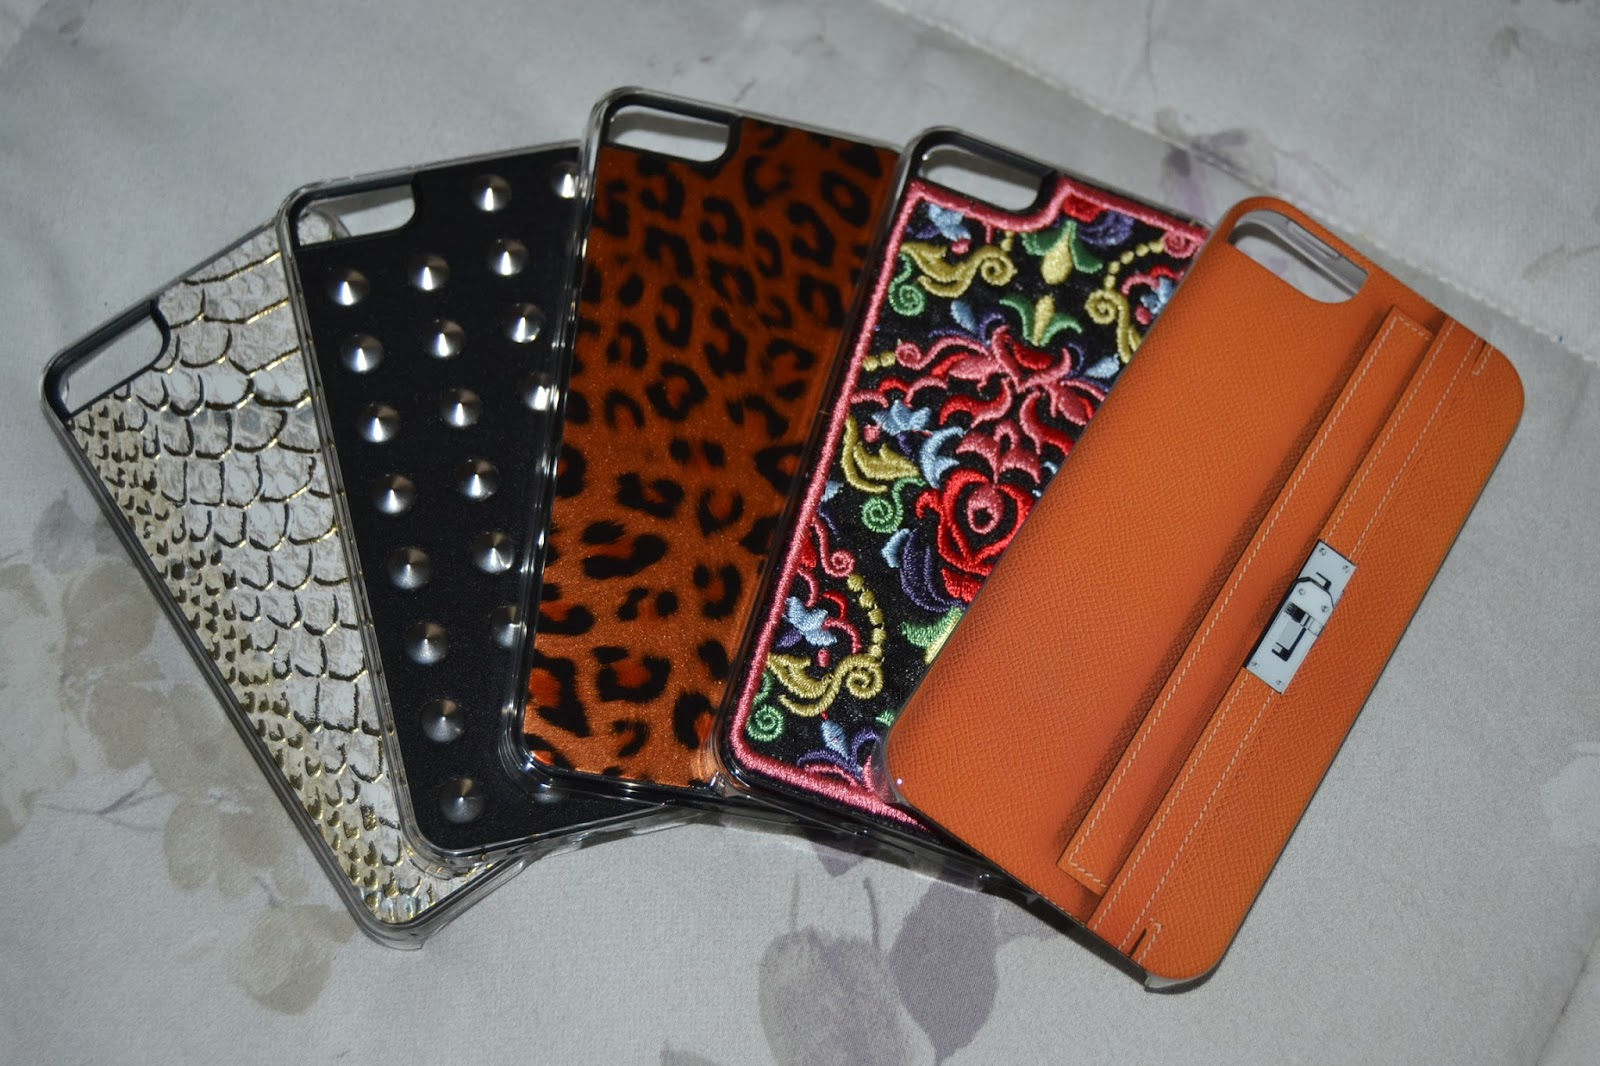 http://www.syriouslyinfashion.com/2014/02/benjamins-cool-iphone-cover-for-everyone.html